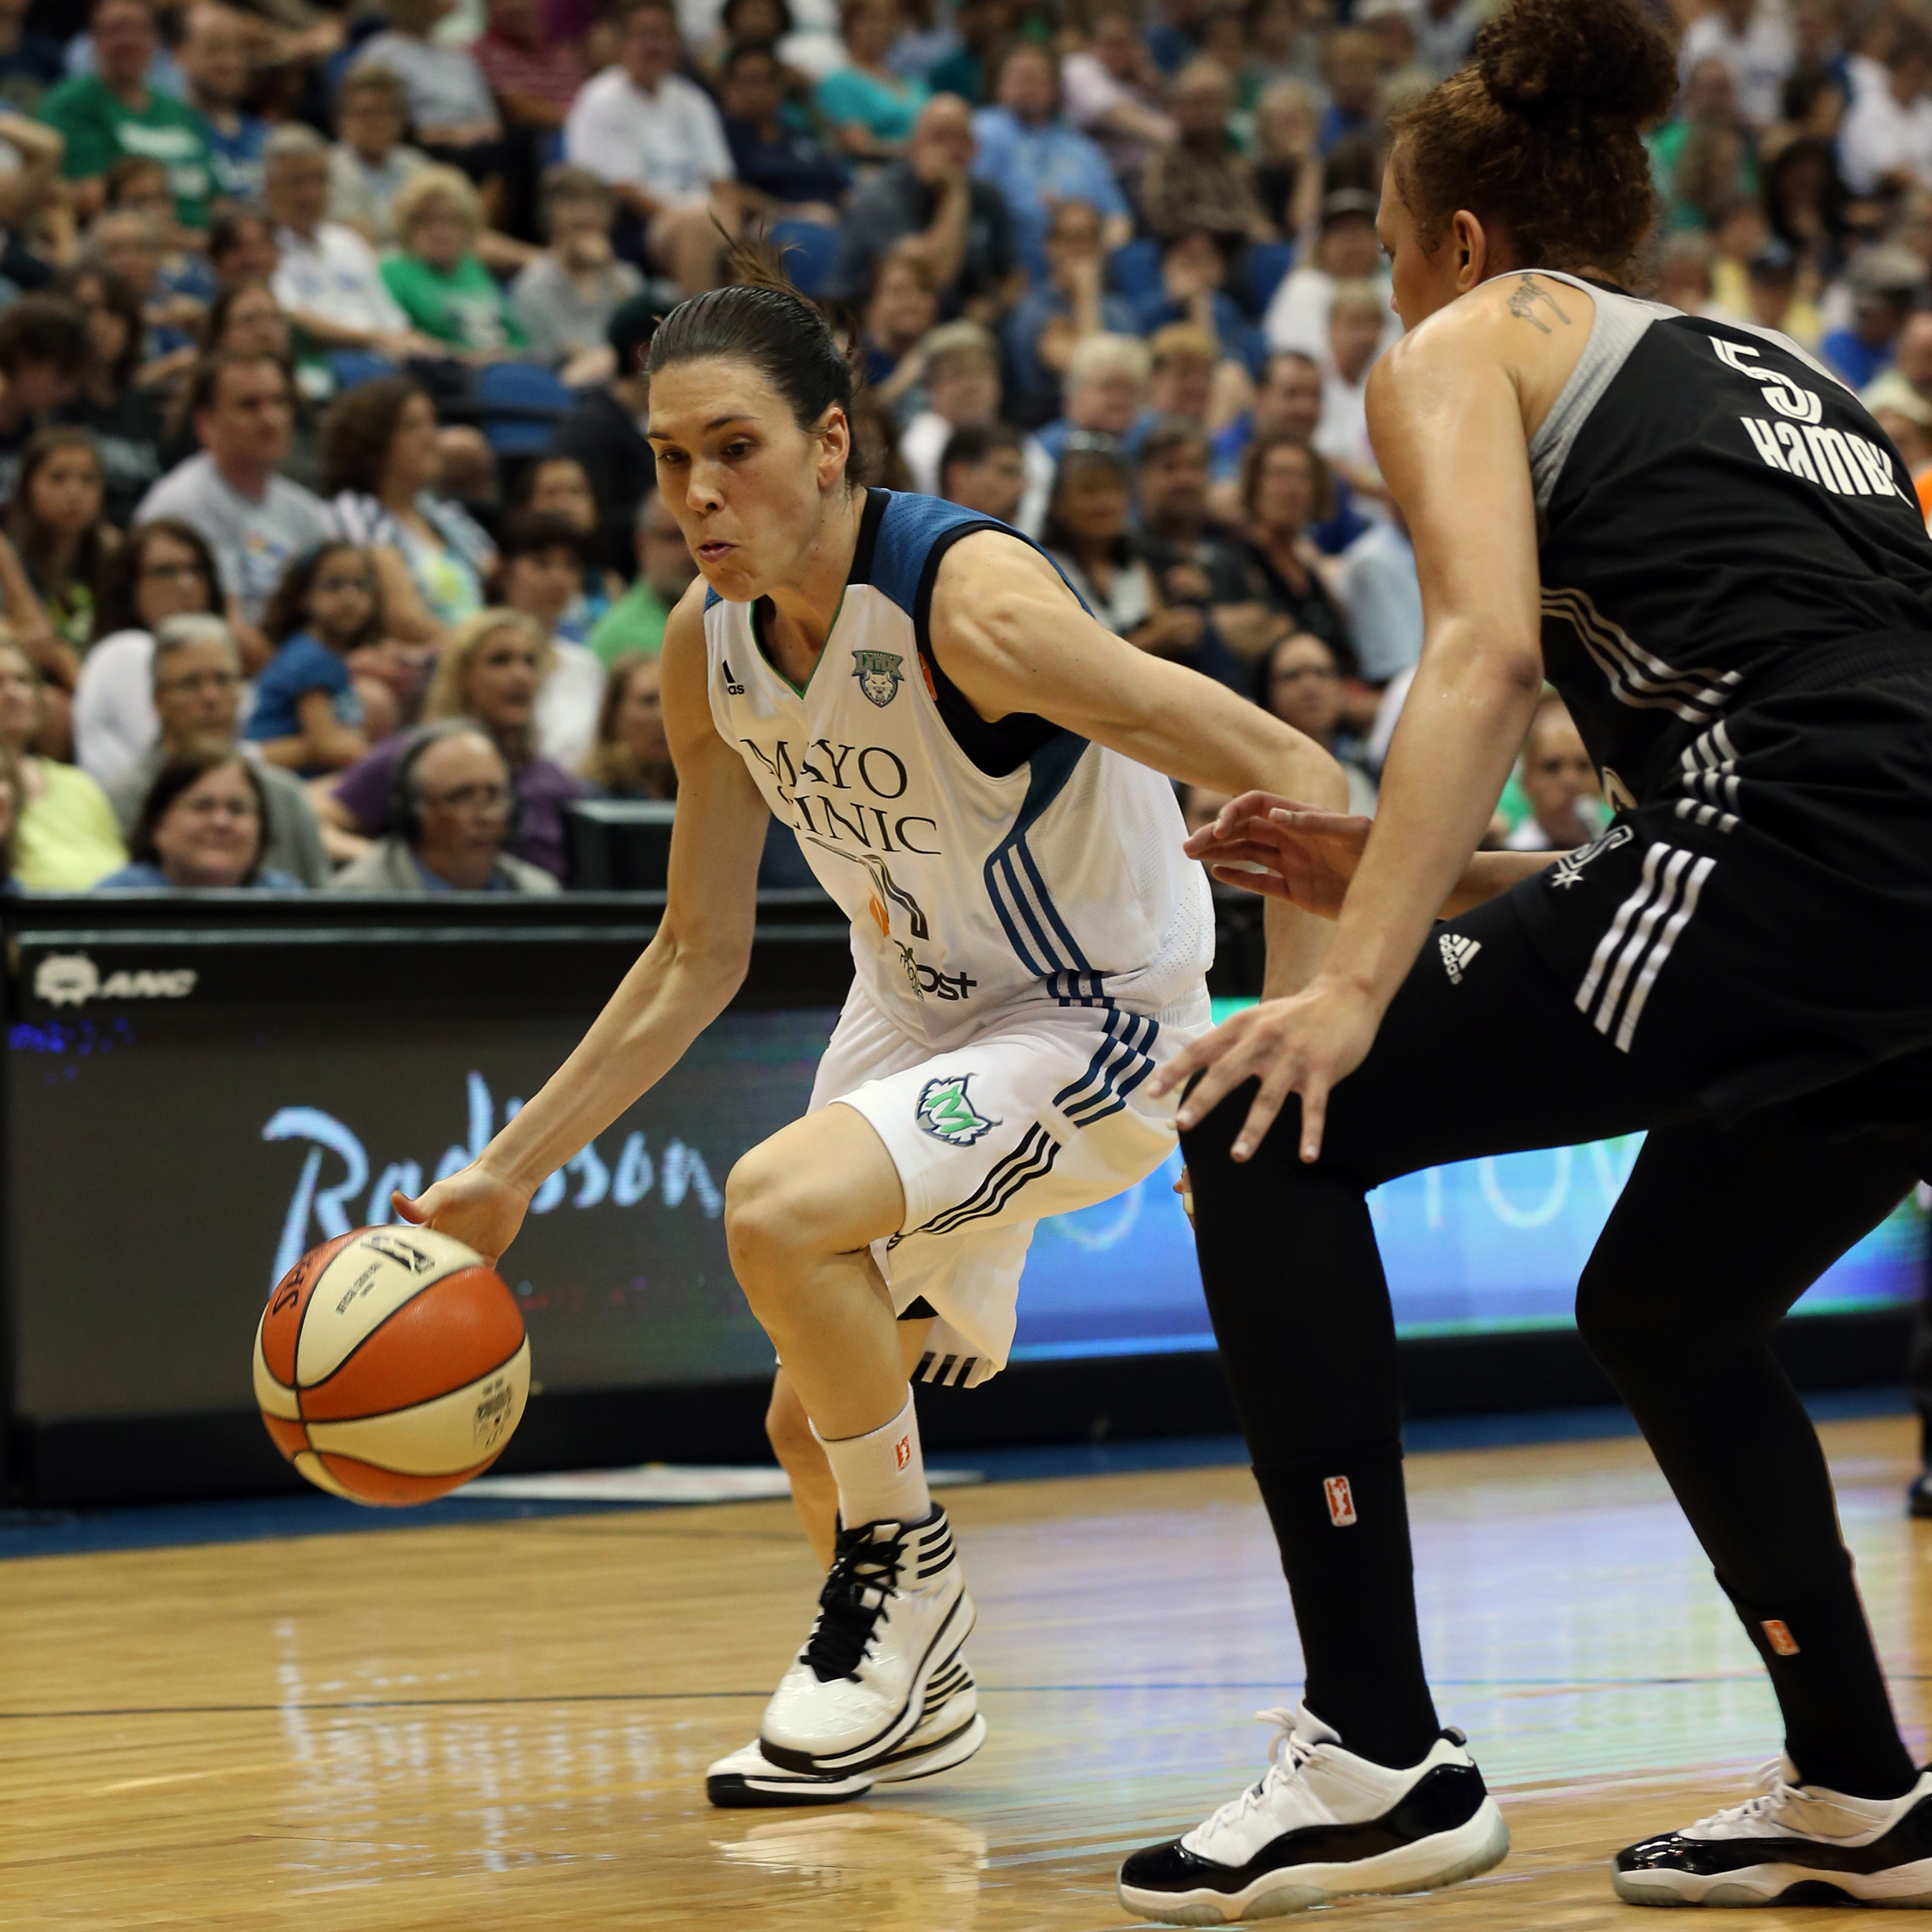 Lynx guard Anna Cruz proved just how valuable she is going to be all season long, providing quality minutes on both ends of the floor and giving the starters some great rest. Cruz finished with two points, seven rebounds and three assists in over 25 minutes of play off the bench.